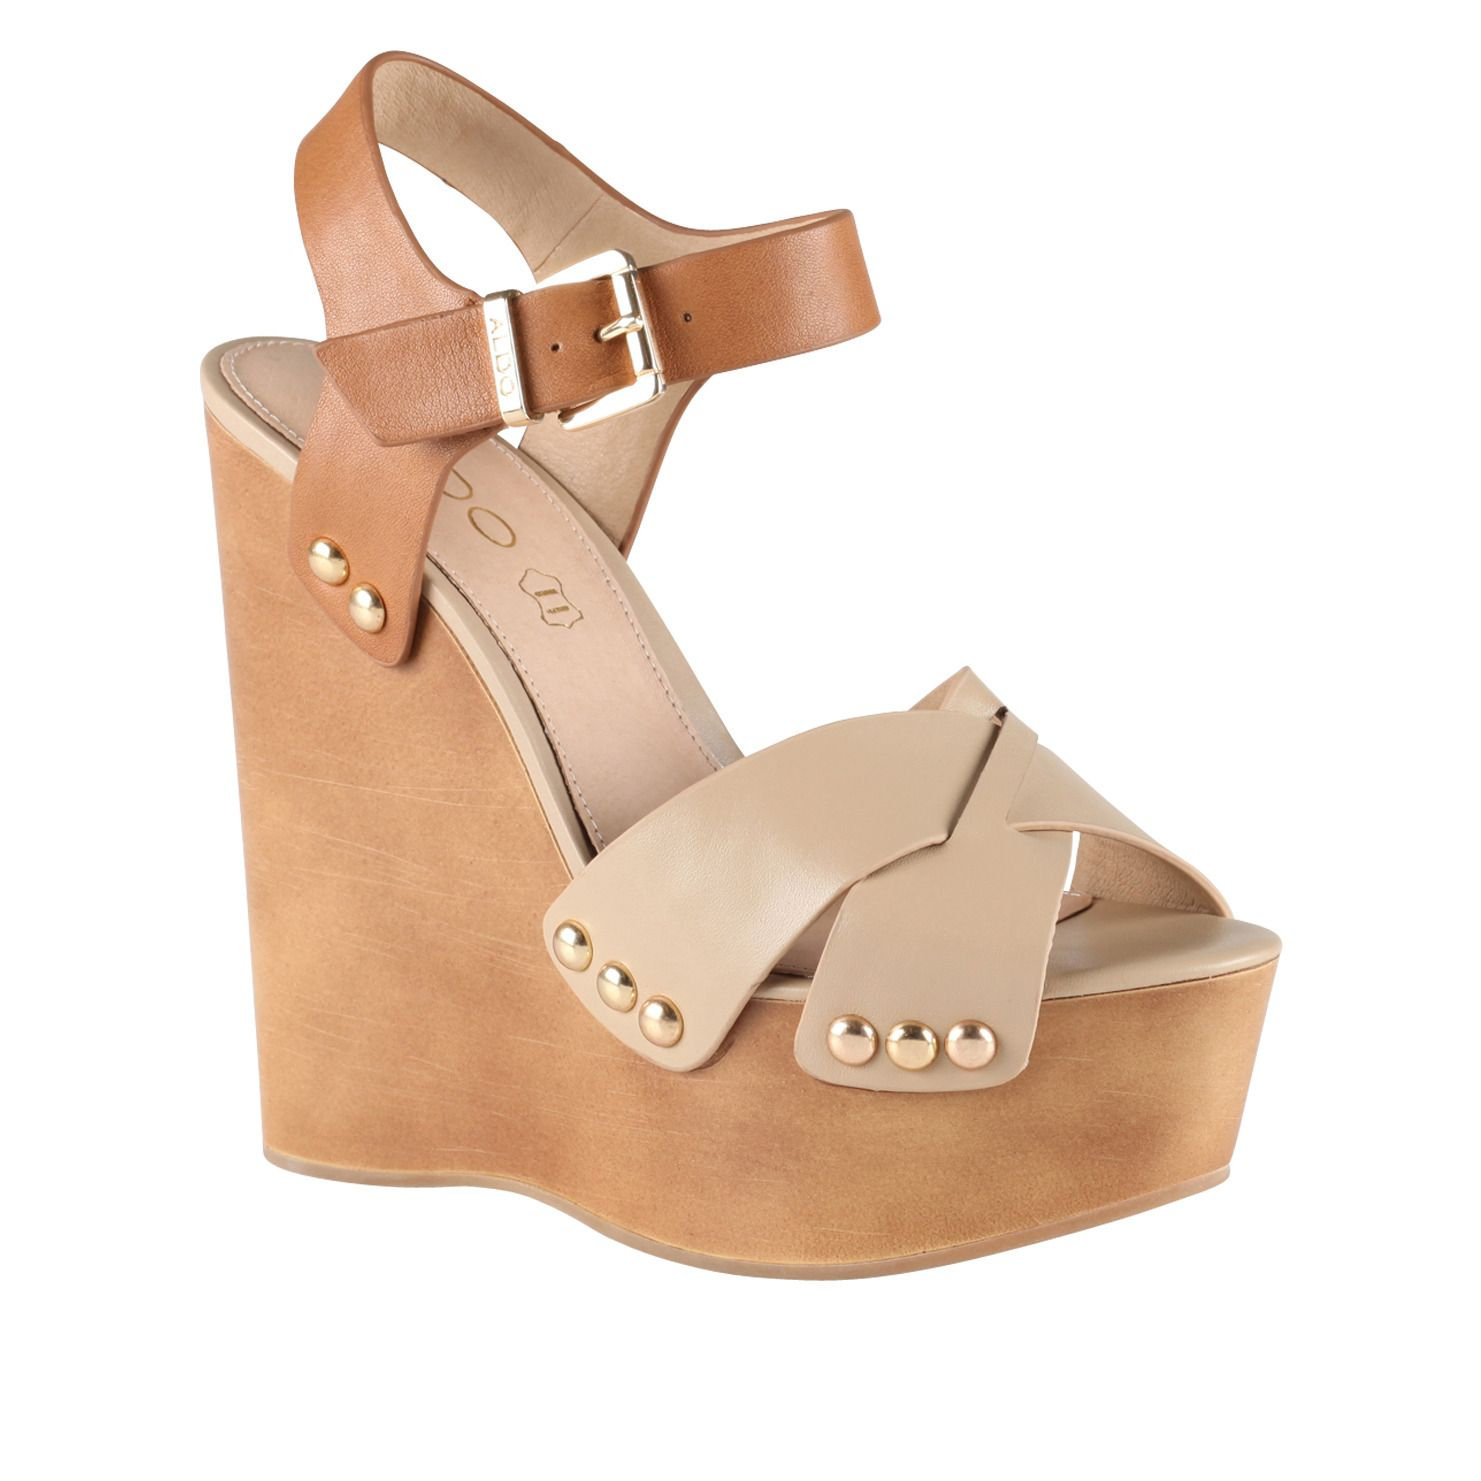 5b51209a5d7 OHAR - womens wedges sandals for sale at ALDO Shoes. | Saw these ...